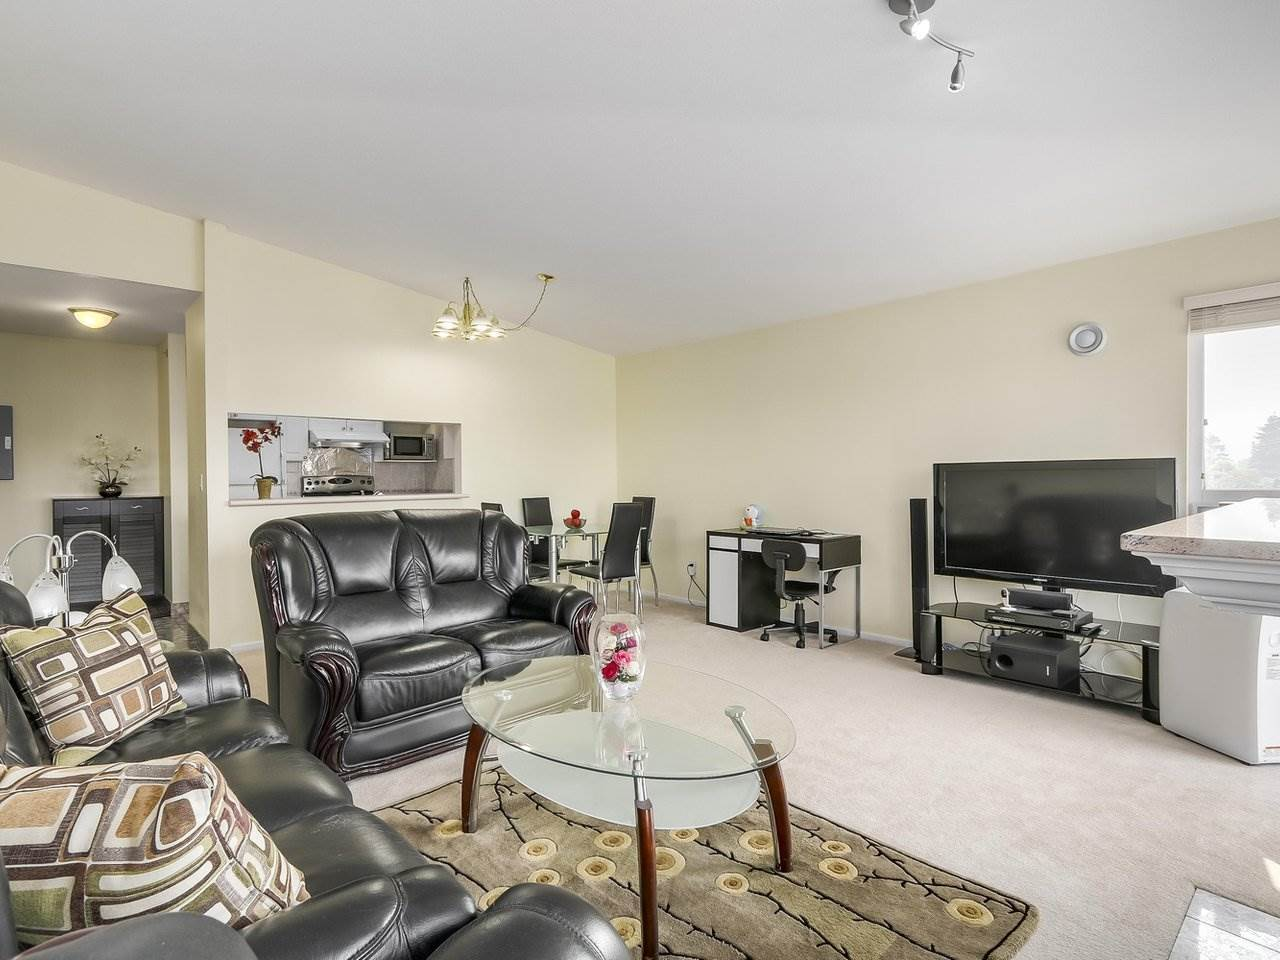 Condo Apartment at 405 2965 HORLEY STREET, Unit 405, Vancouver East, British Columbia. Image 5